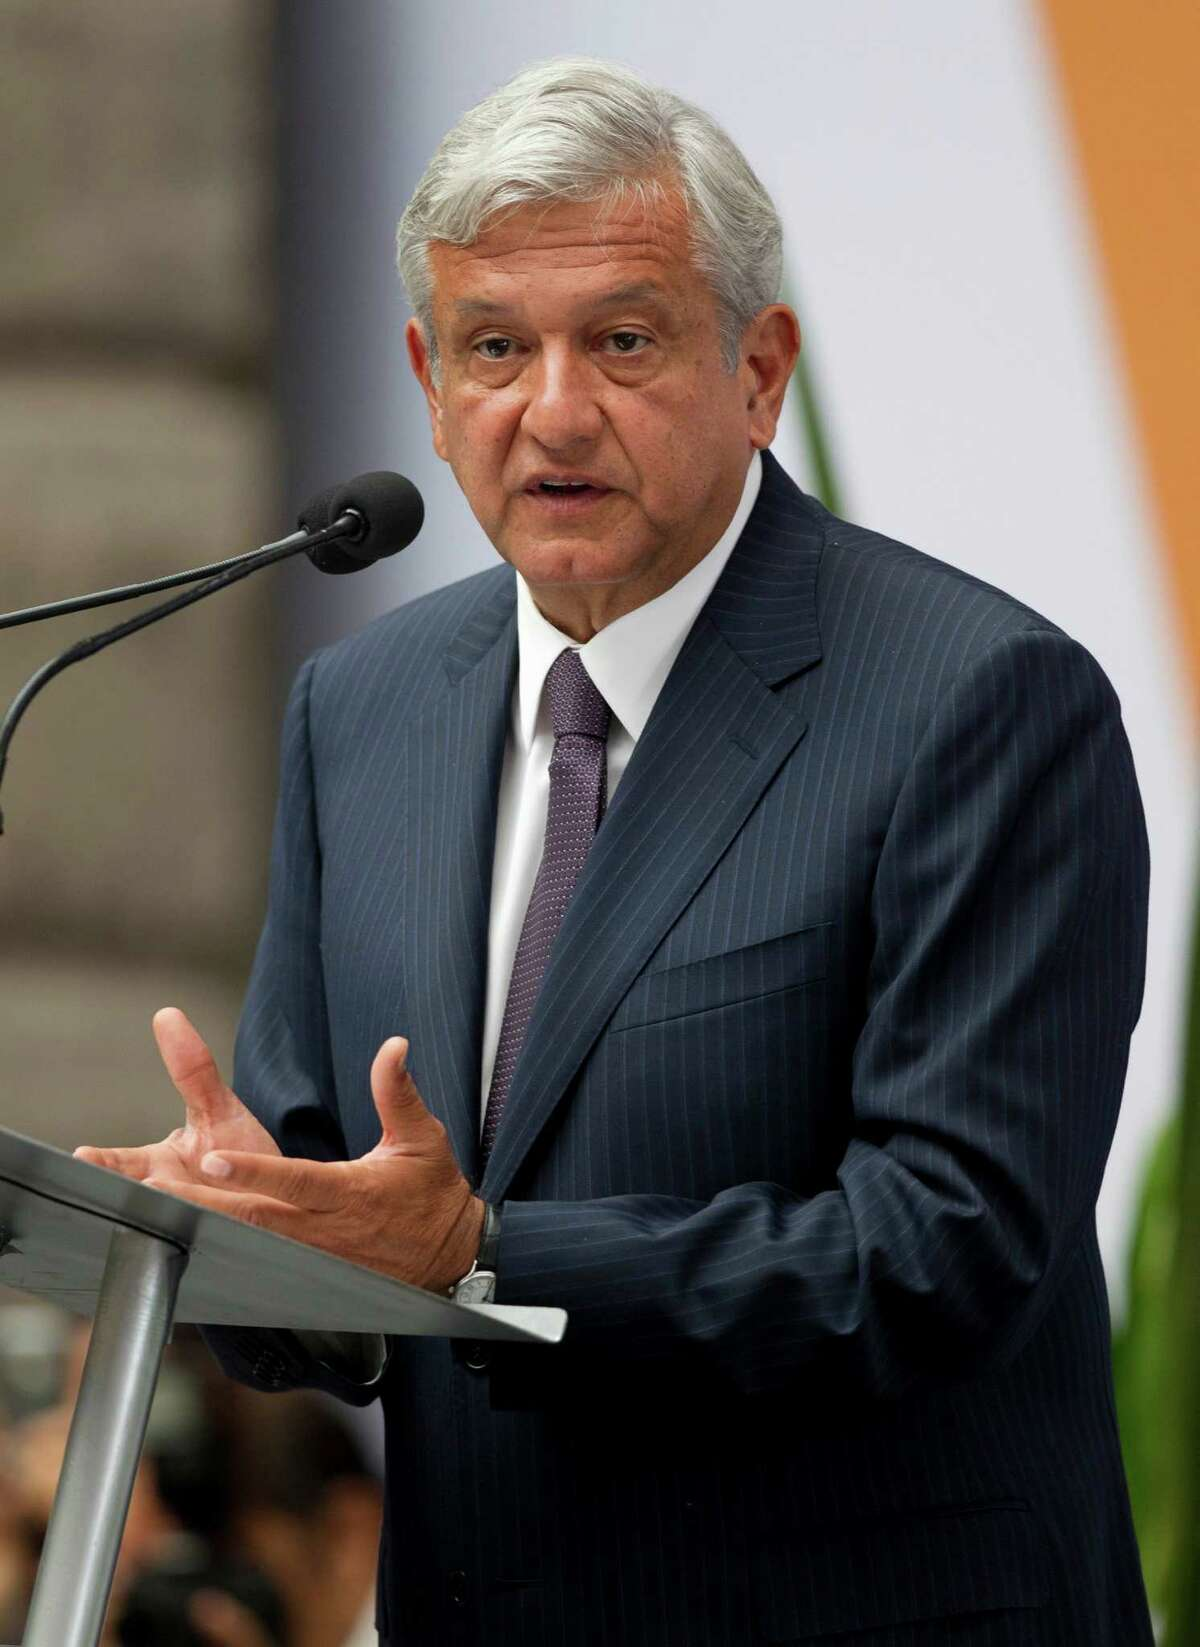 Lopez Obrador is within four points of the front-runner, according to a poll published Thursday in the newspaper Reforma.